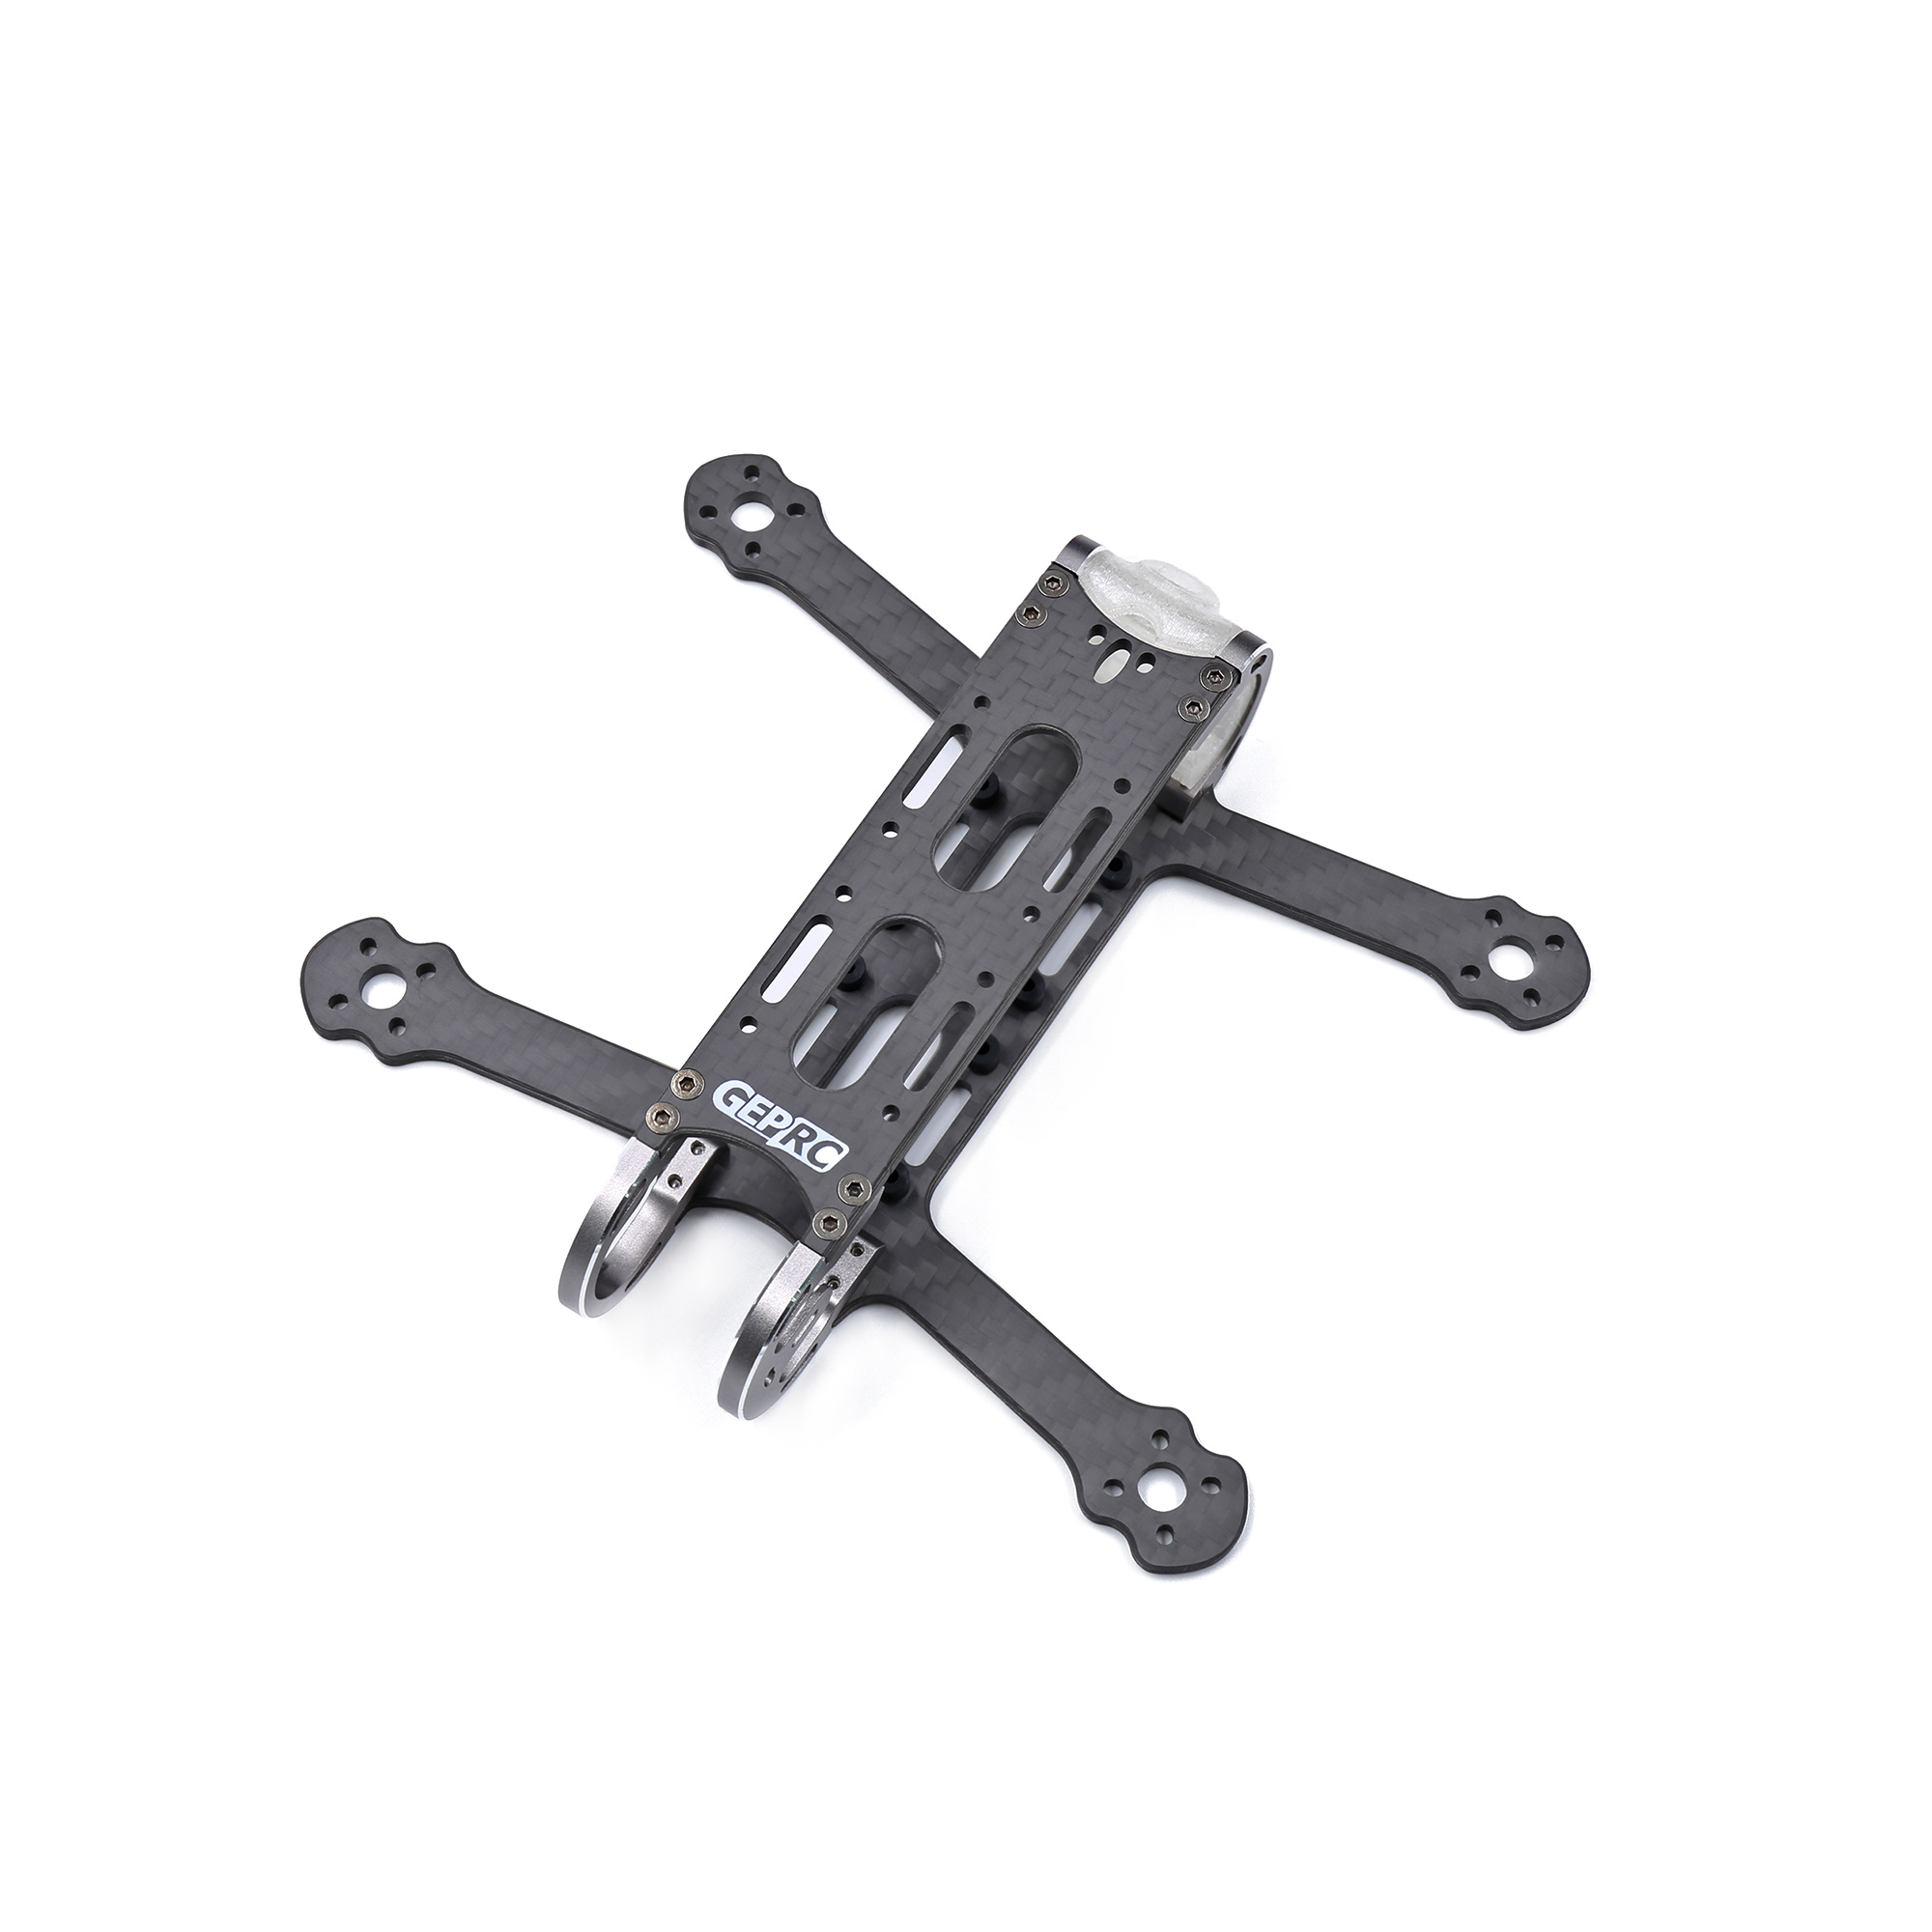 GEP- CX3 PRO 145mm 3 Inch FPV Drone Frame Kit